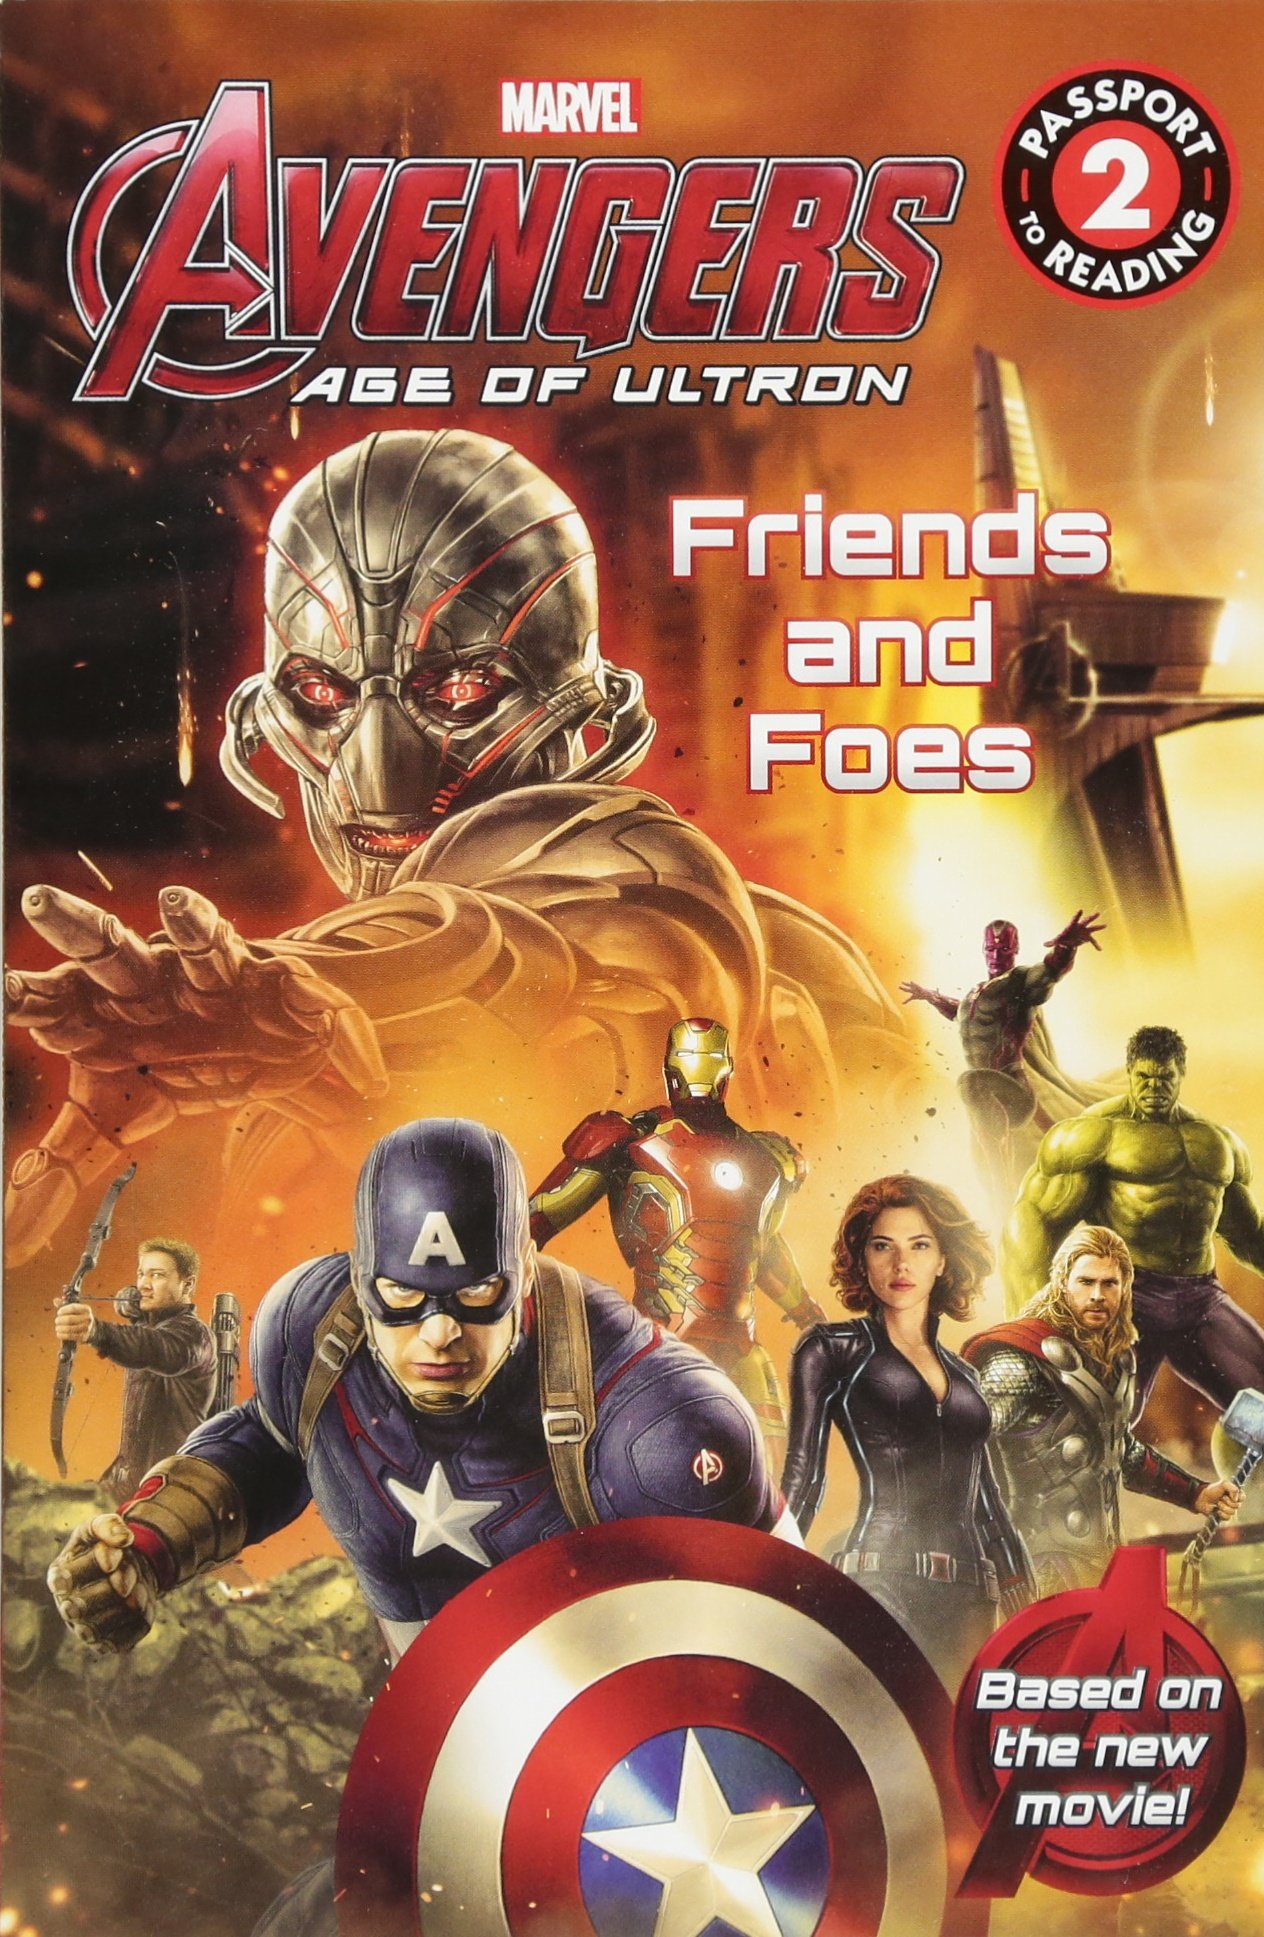 Read Online Marvel's Avengers: Age of Ultron: Friends and Foes (Passport to Reading Level 2) ebook